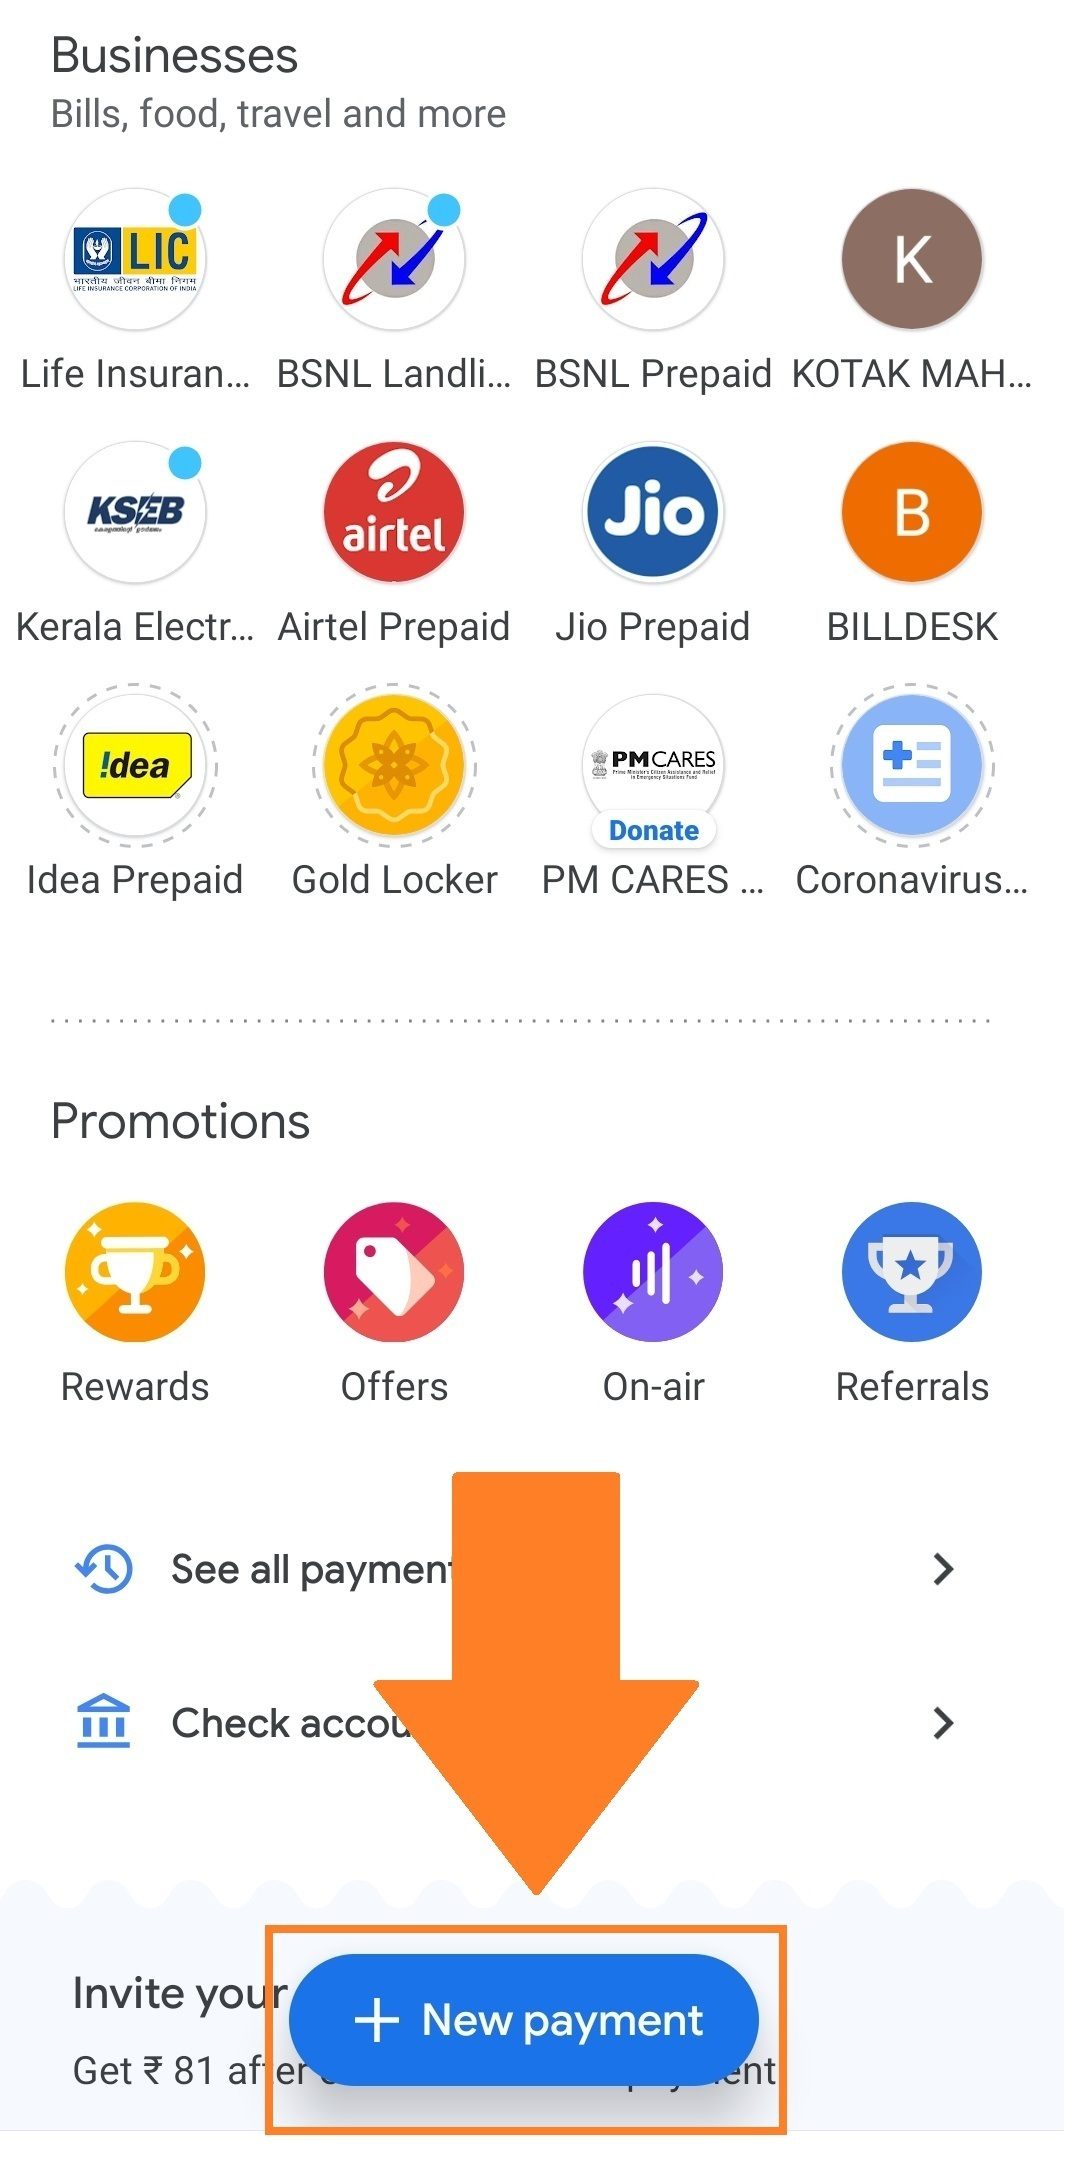 KSEB Bill Payment Through Google Pay – Guide to Link Your KSEB Account and Pay Using Google Pay